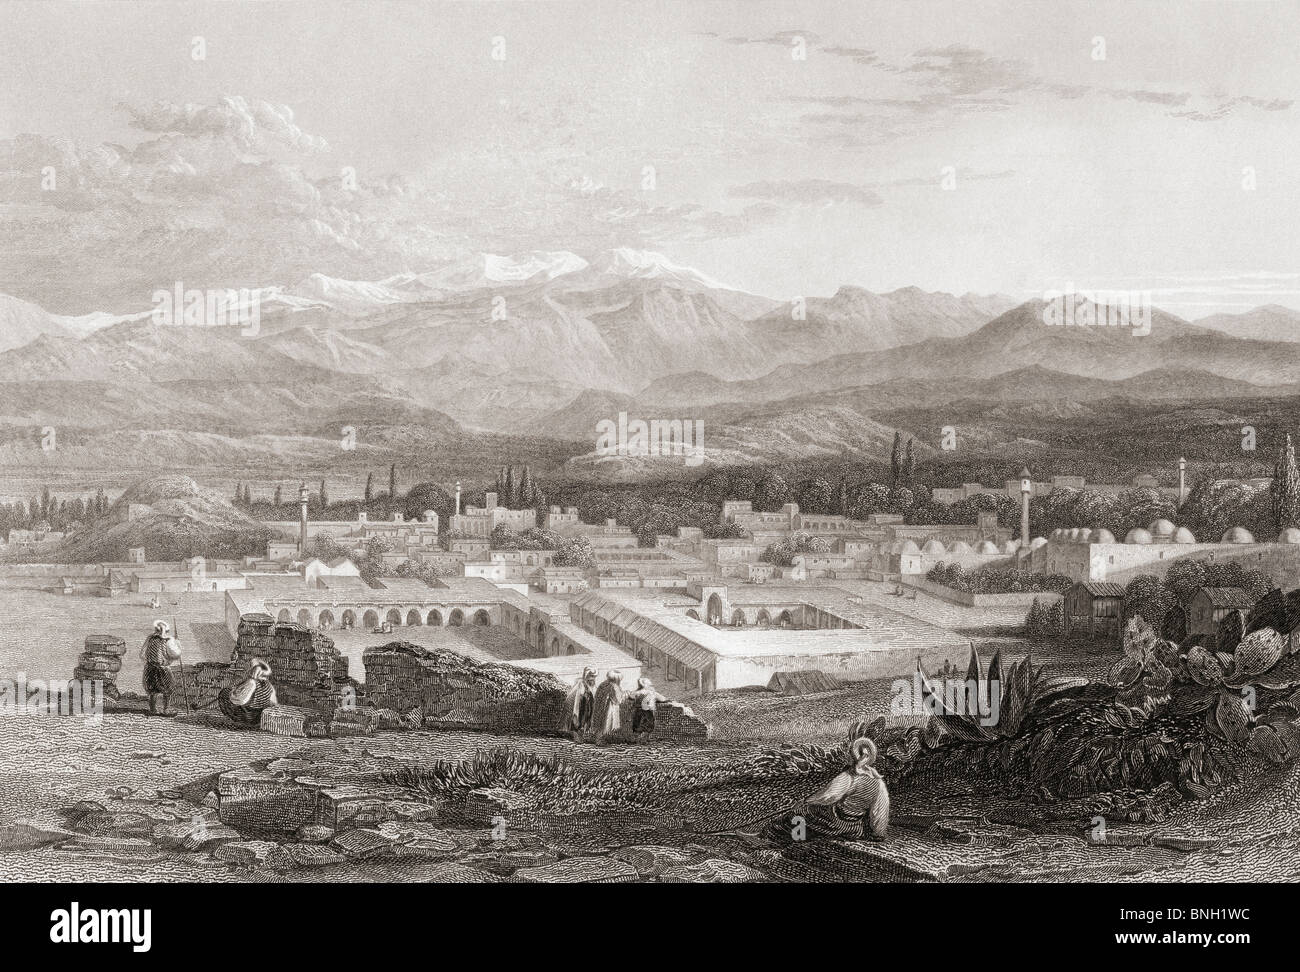 Tarsus, Turkey. 19th century print drawn by W.L. Leitch from a sketch by Count Leon de Laborde. - Stock Image